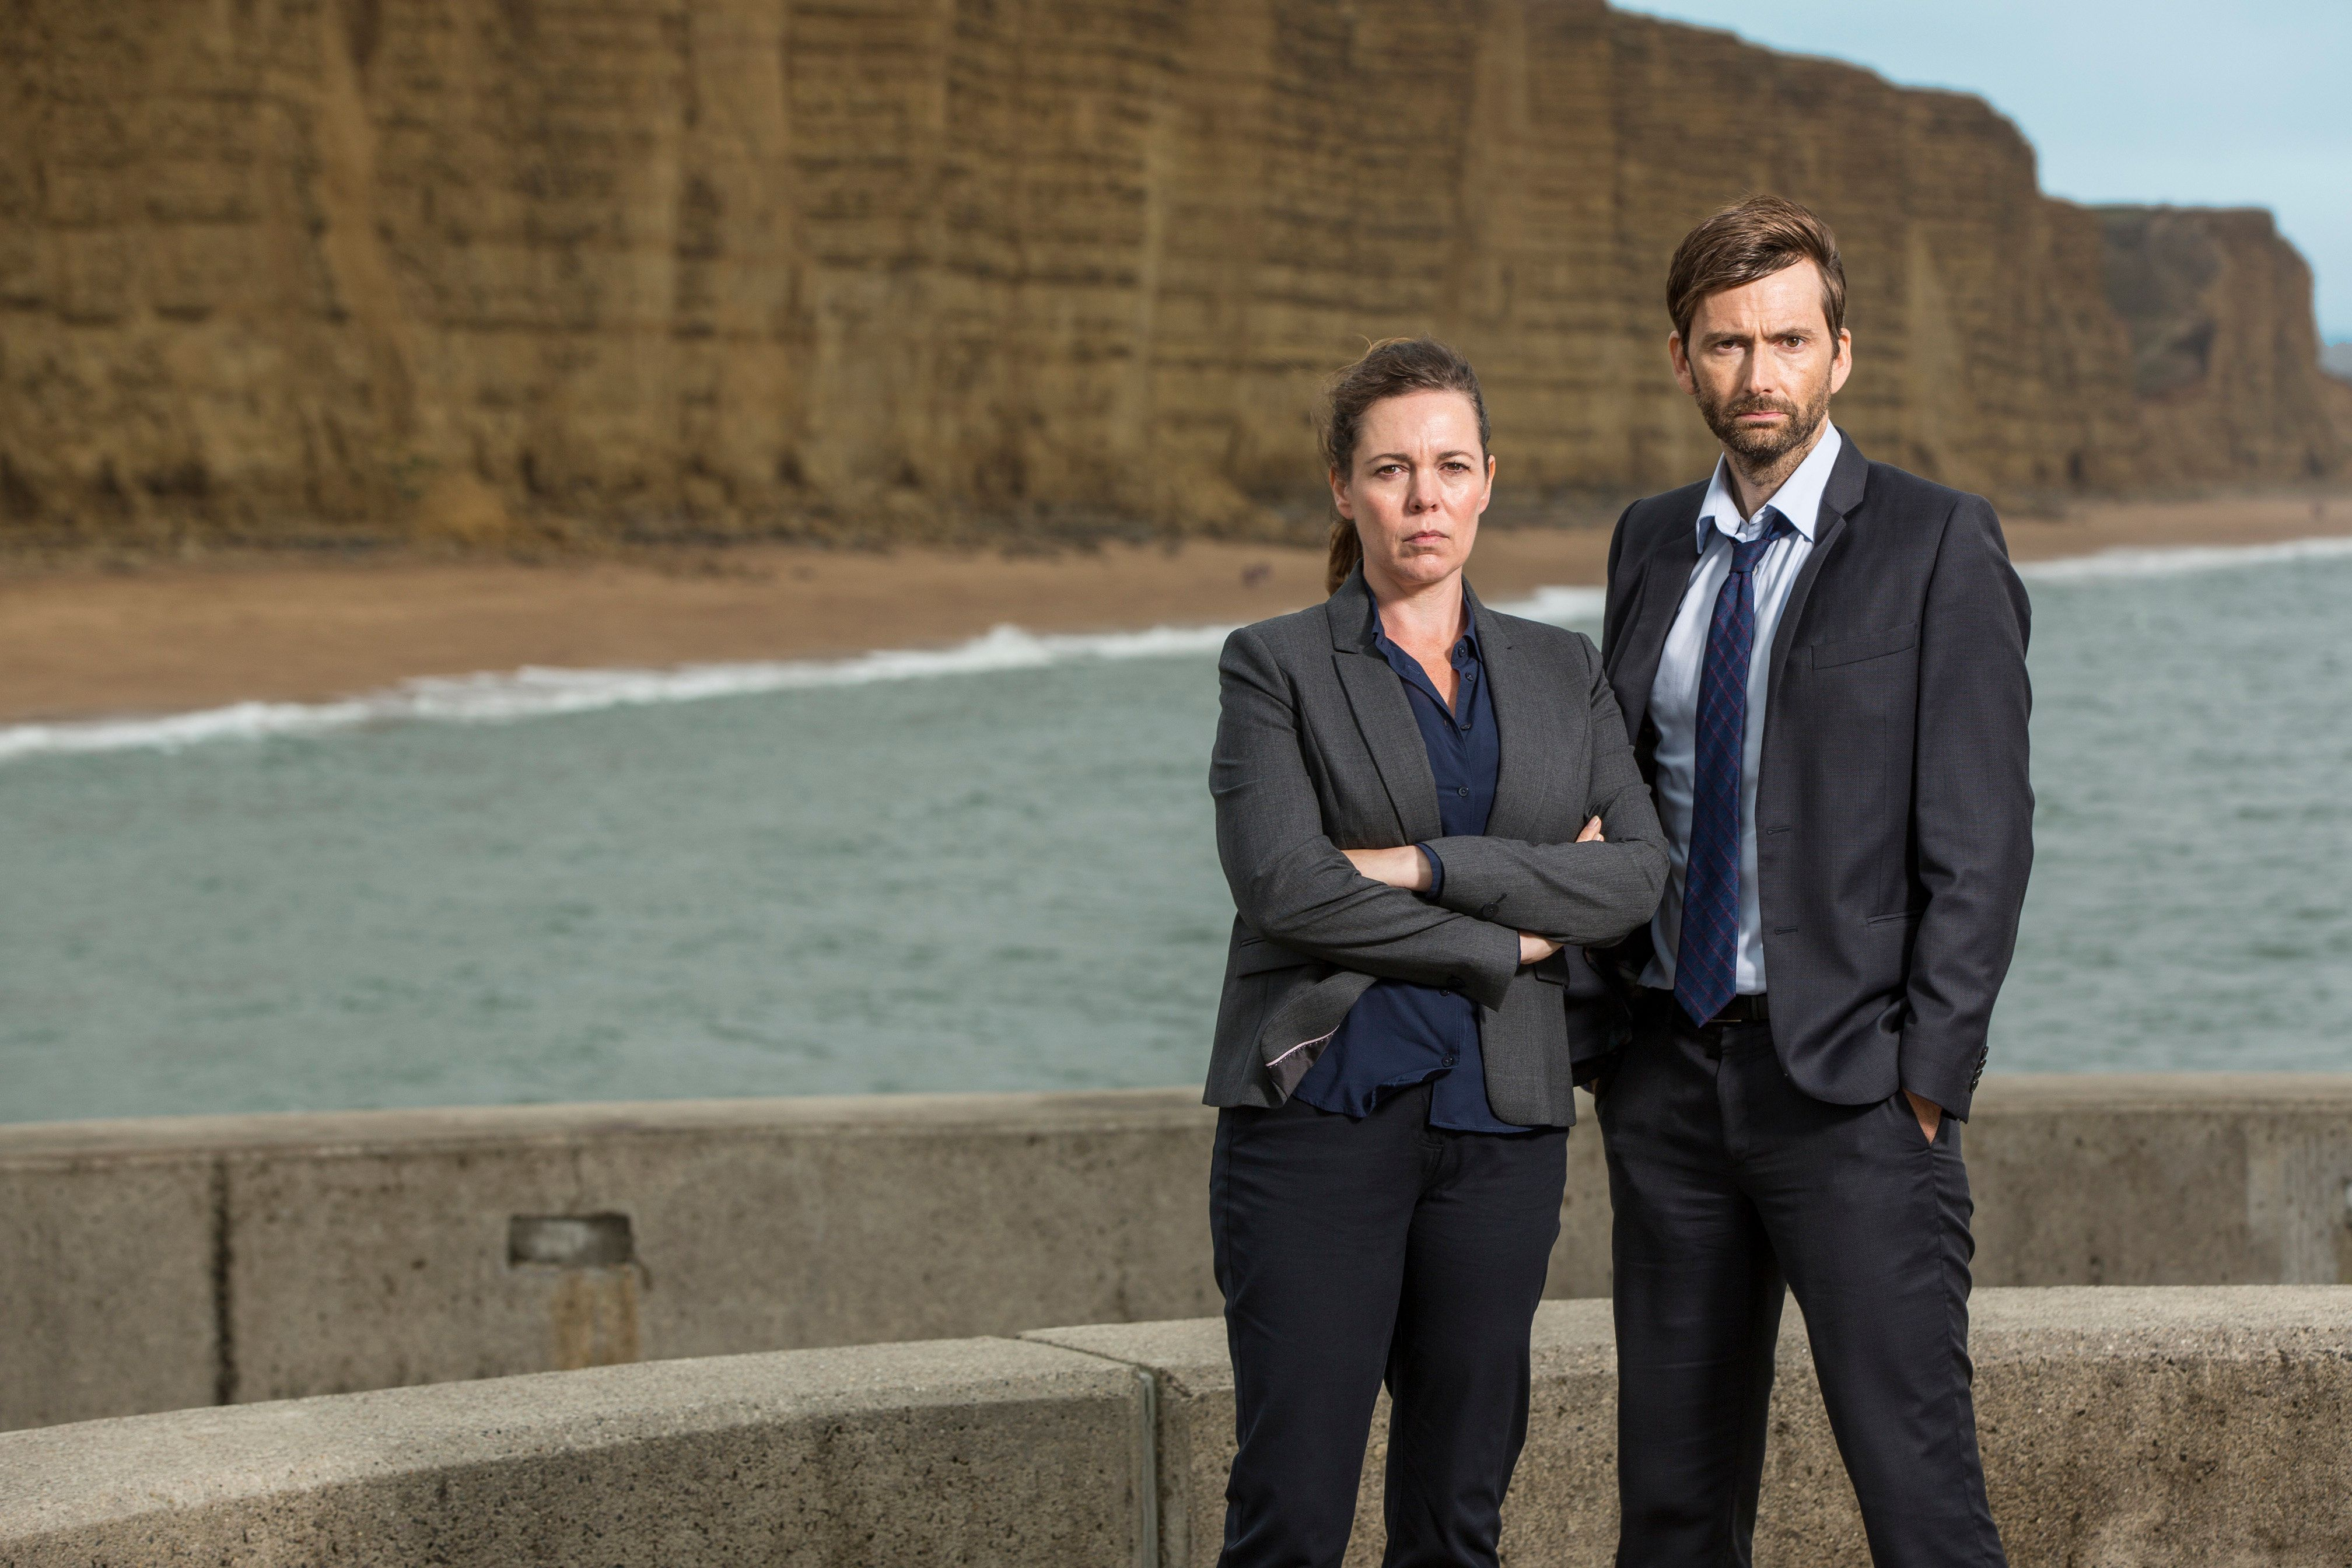 'Broadchurch' Season 3: Air Date, Spoilers And Cast - Everything You Need To Know About The New